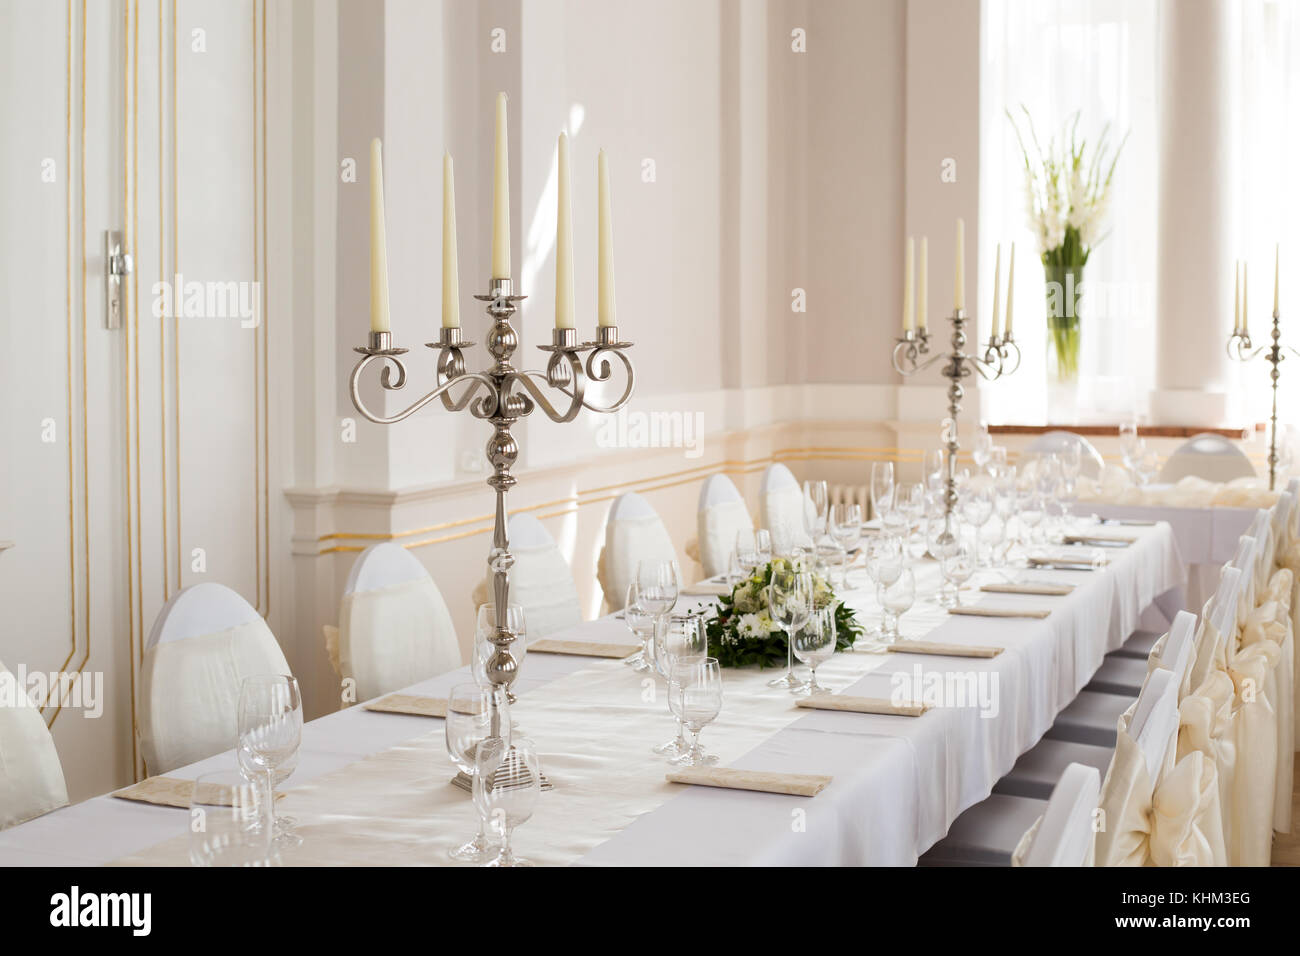 Close-up photo of chromium candlestick with five unlit white wax candles placed on the table prepared for wedding - Stock Image